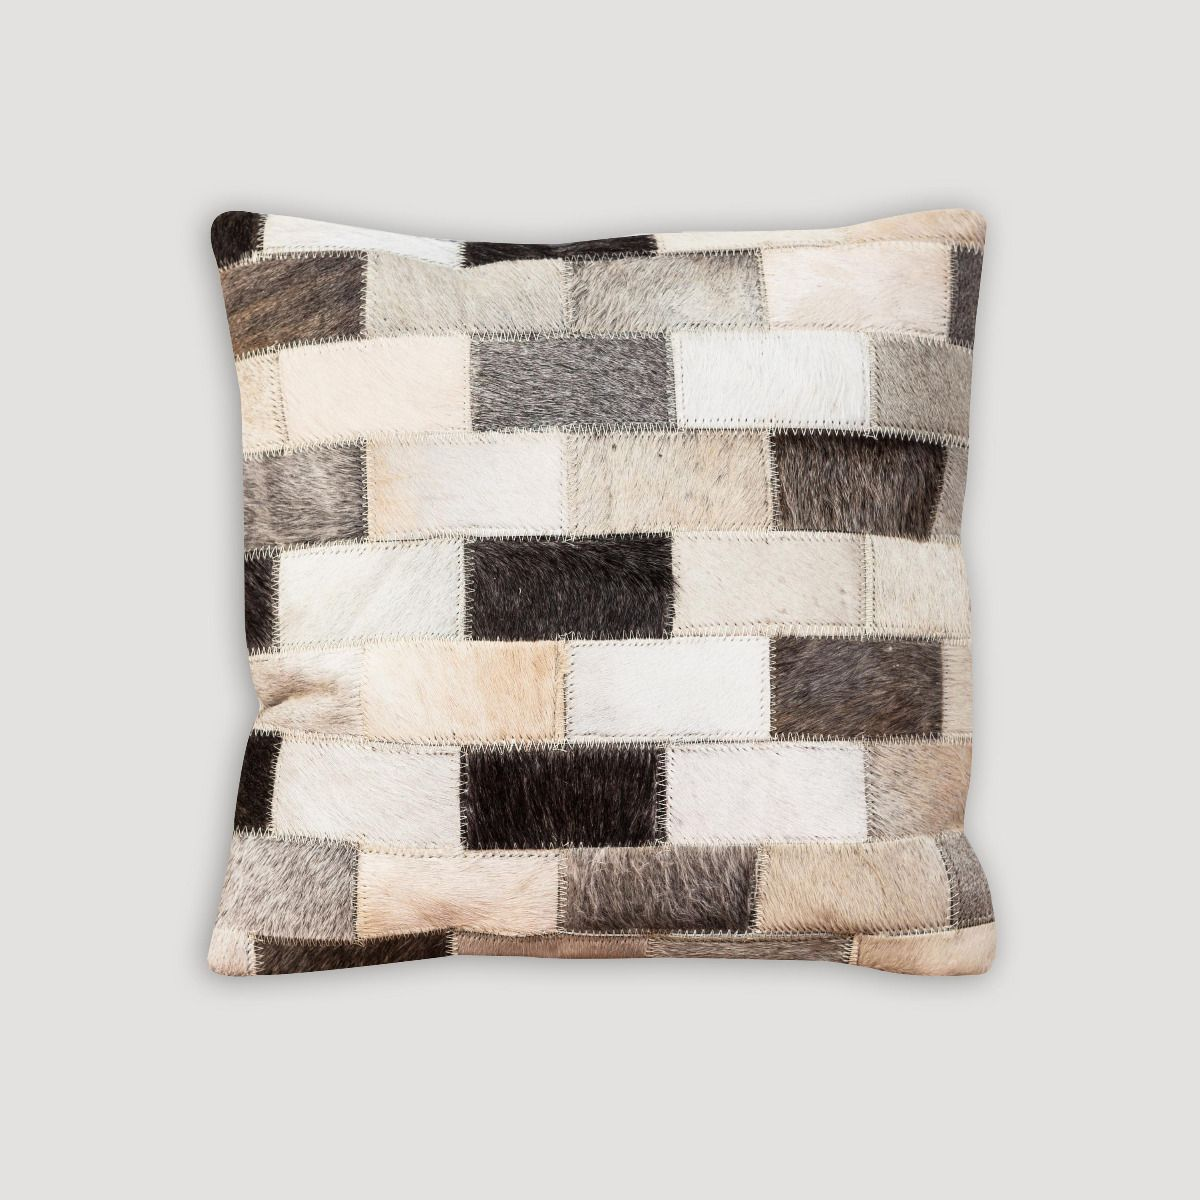 Brick Pattern Grey Leather Cushion II